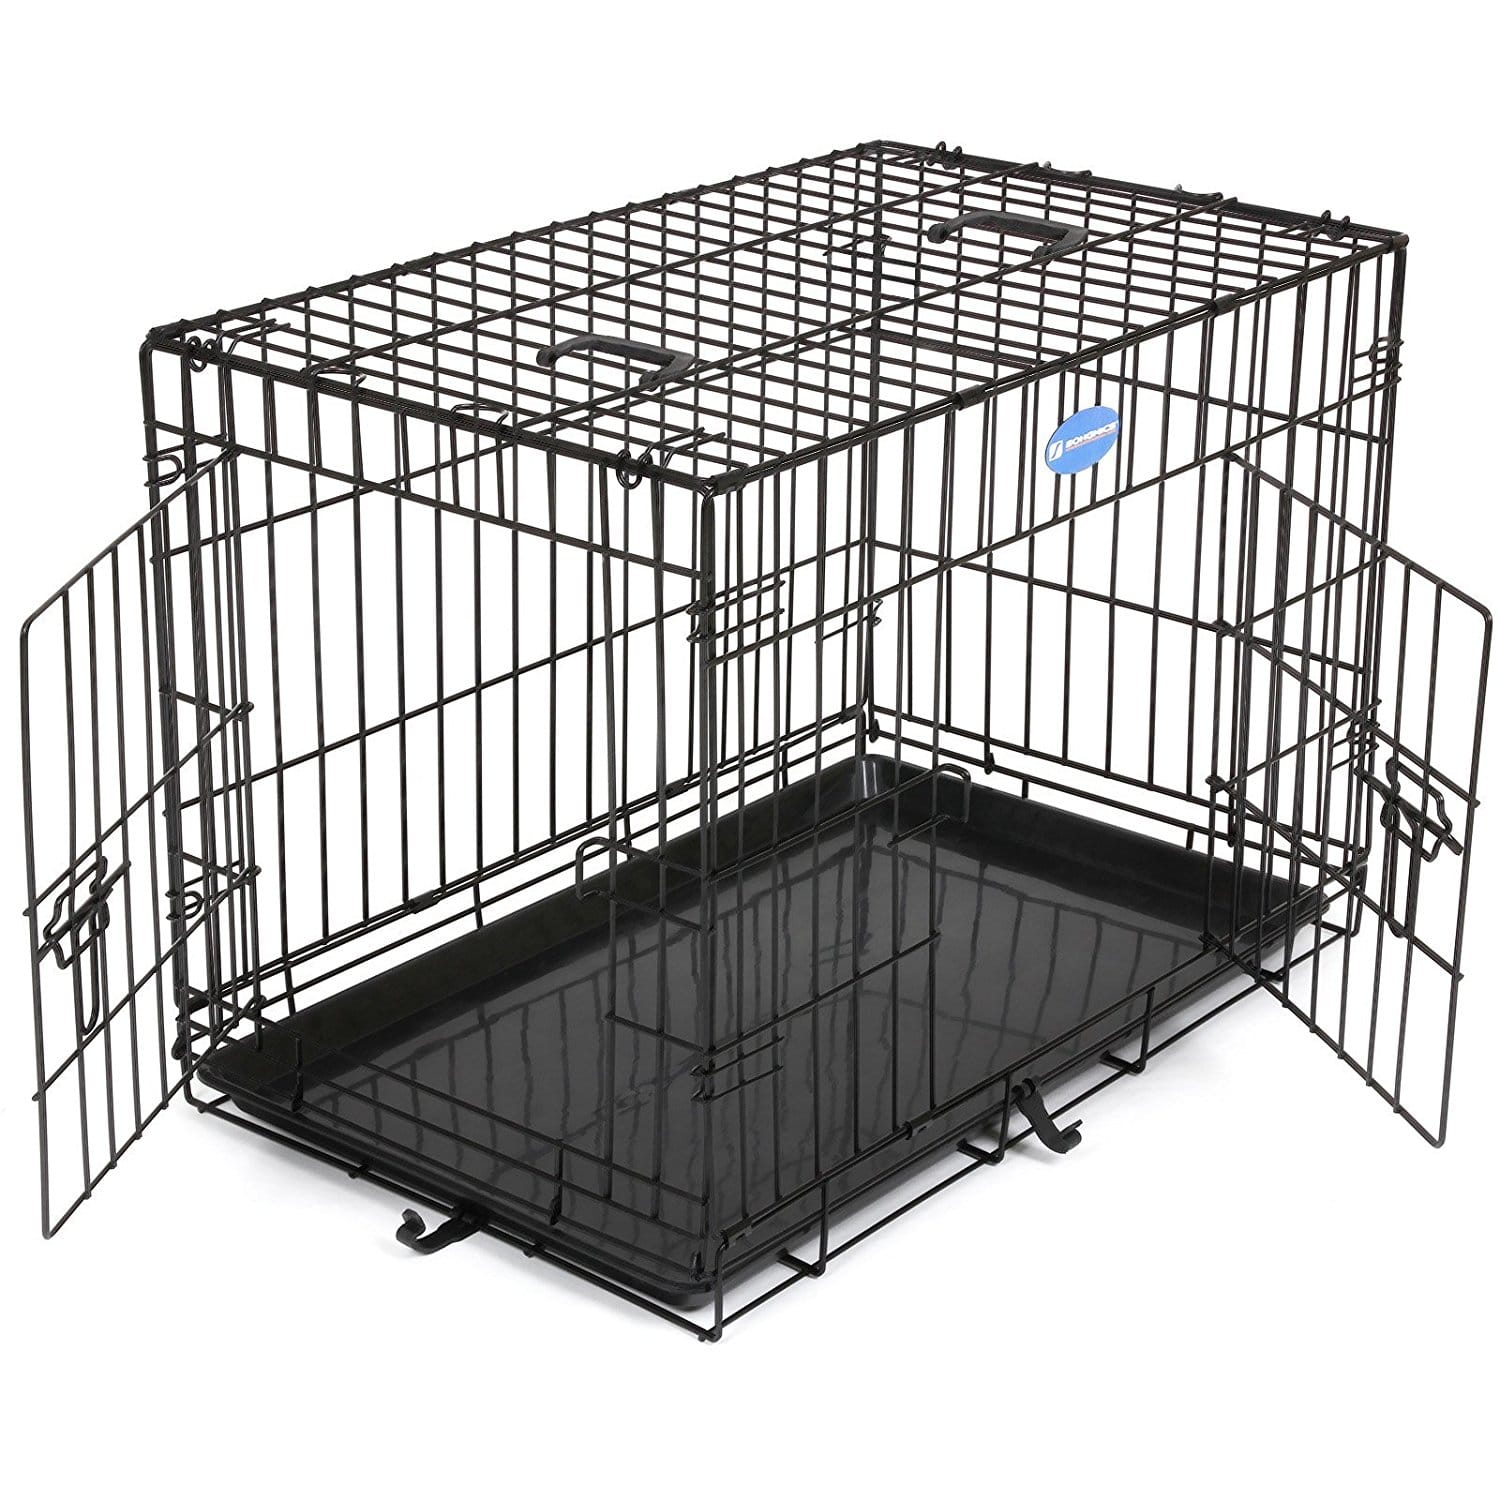 cage pour chien pliable et transportable de m xxl. Black Bedroom Furniture Sets. Home Design Ideas